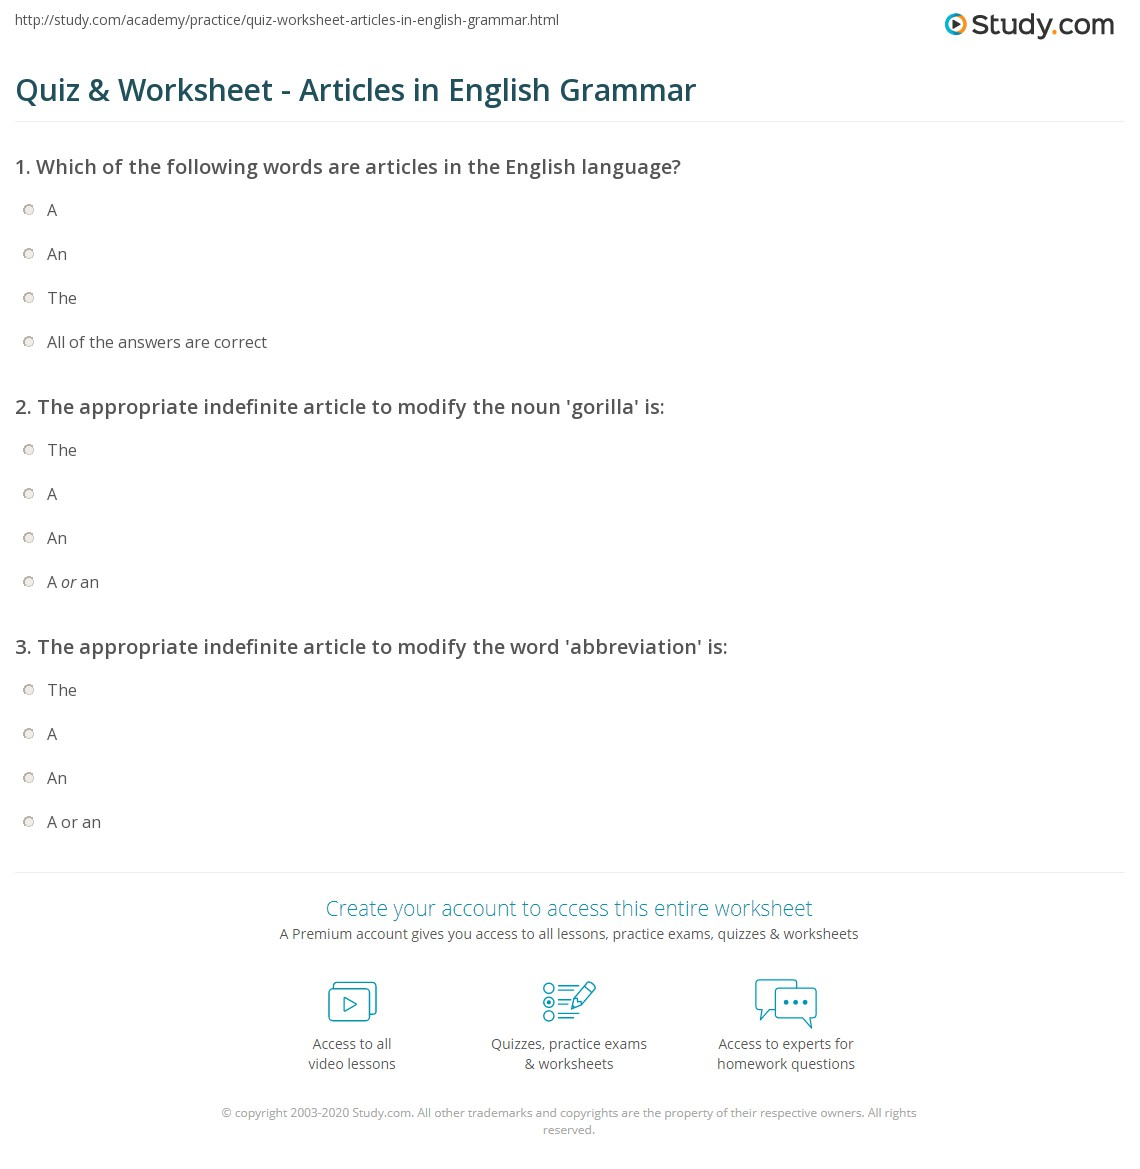 Quiz Worksheet Articles In English Grammar Study